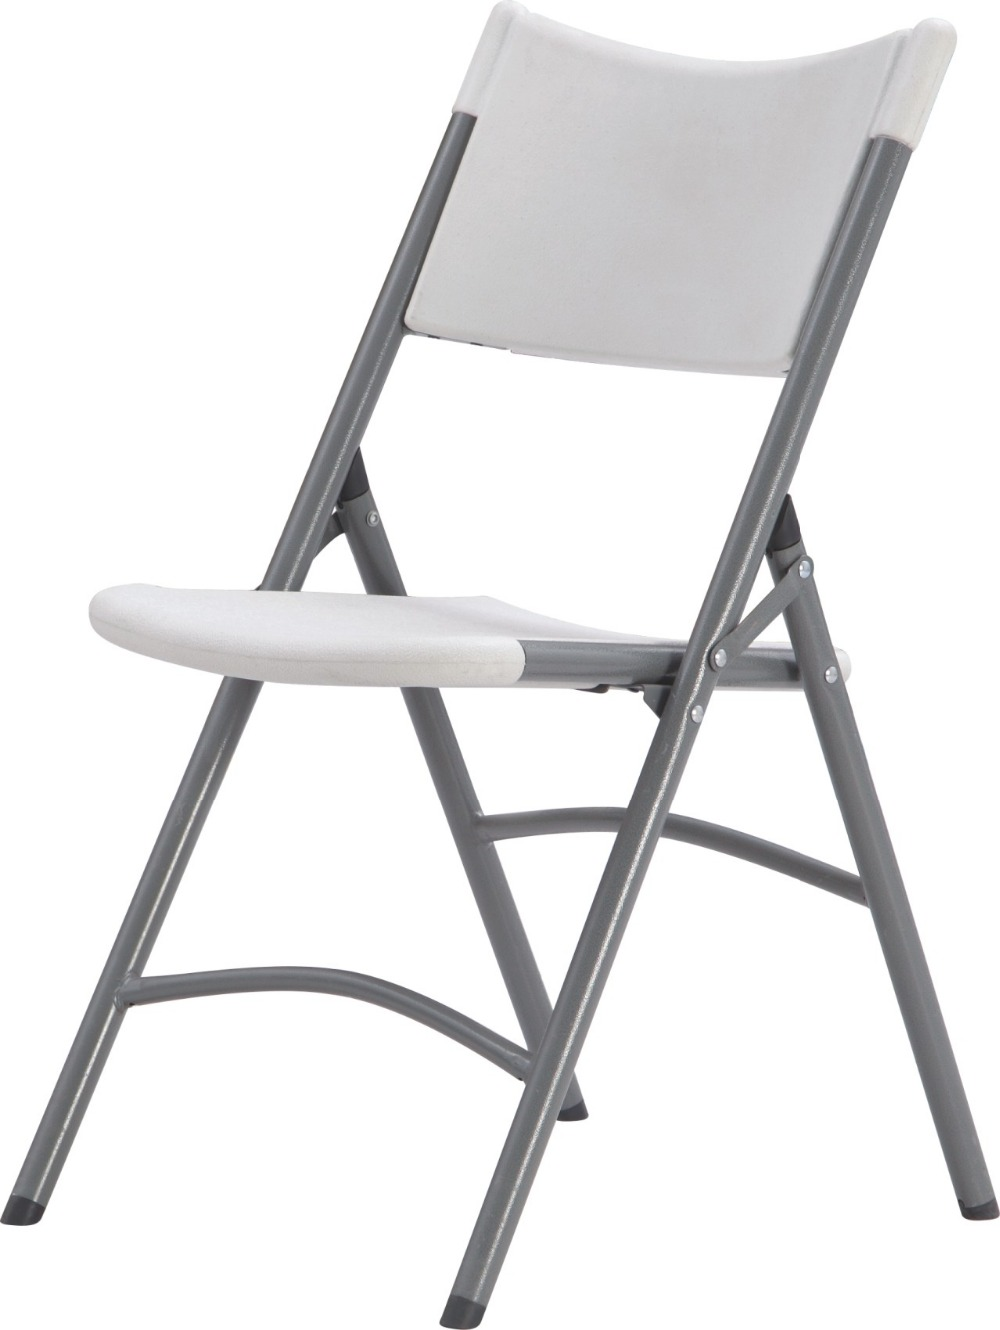 White plastic folding chairs - Plastic Folding Chair Outdoor Events Use Hot Sale Hdpe Blow Mould Chair Party Barbecue